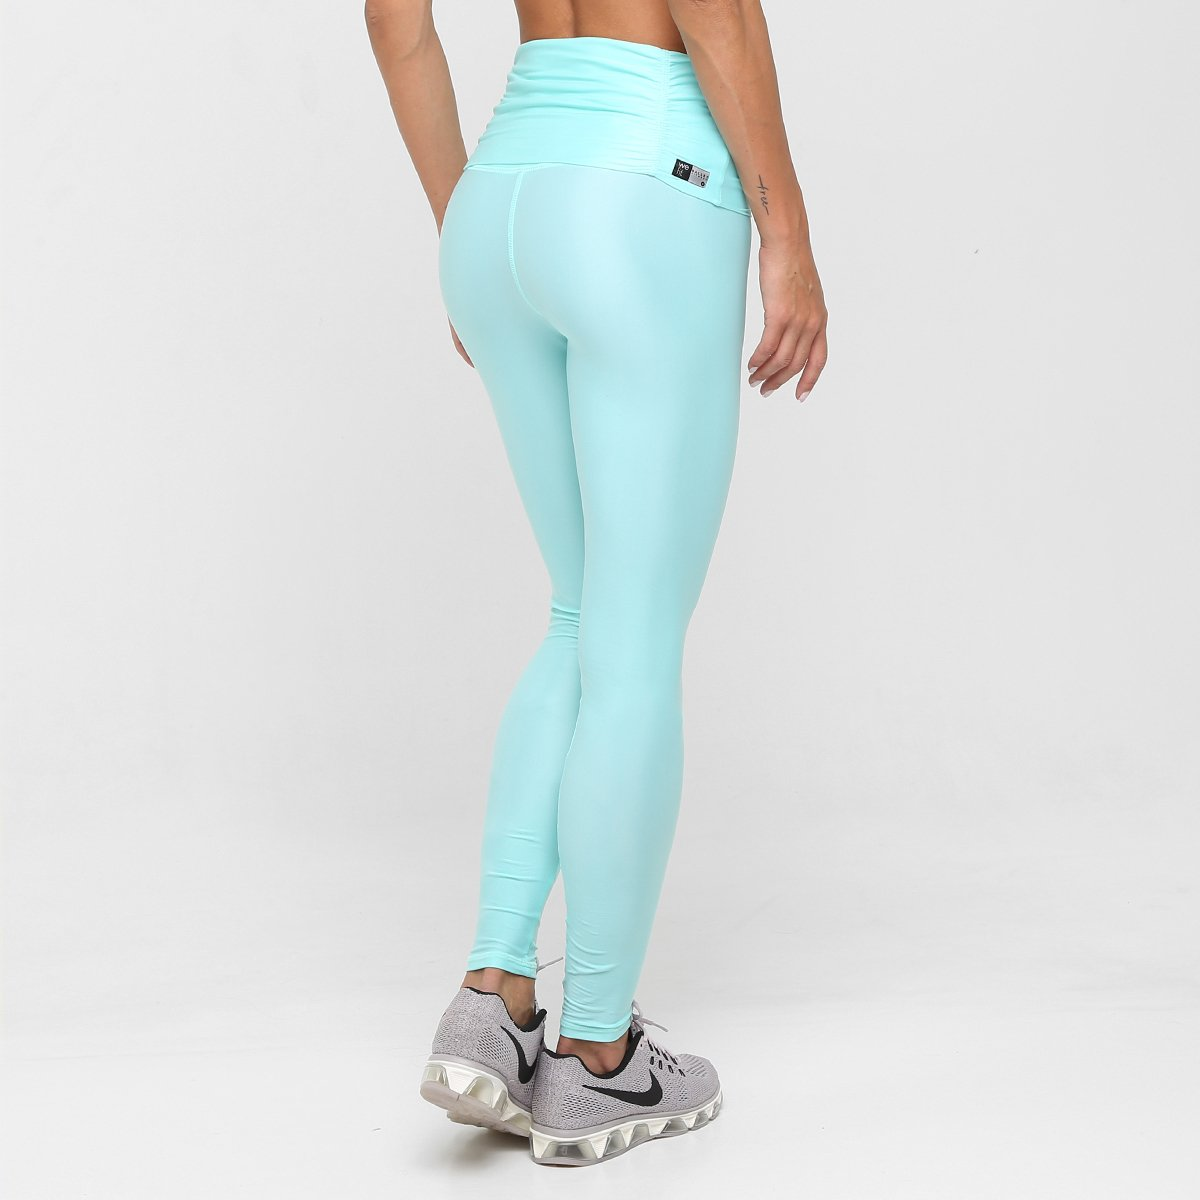 Azul Feminina Legging Claro We Fit Feminina Fit We Demi Calça Calça Demi Legging HqPt76wtn